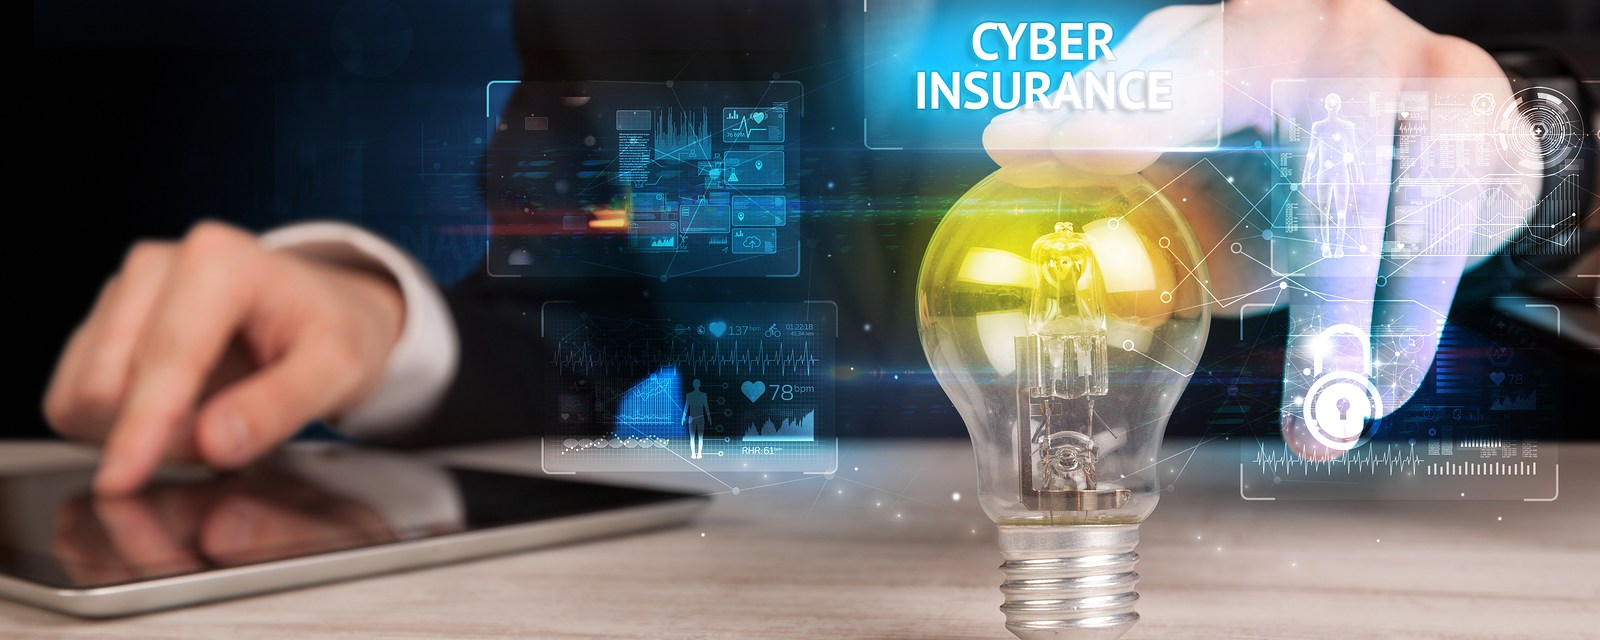 How the U.S. Cyber Insurance Market Is Performing